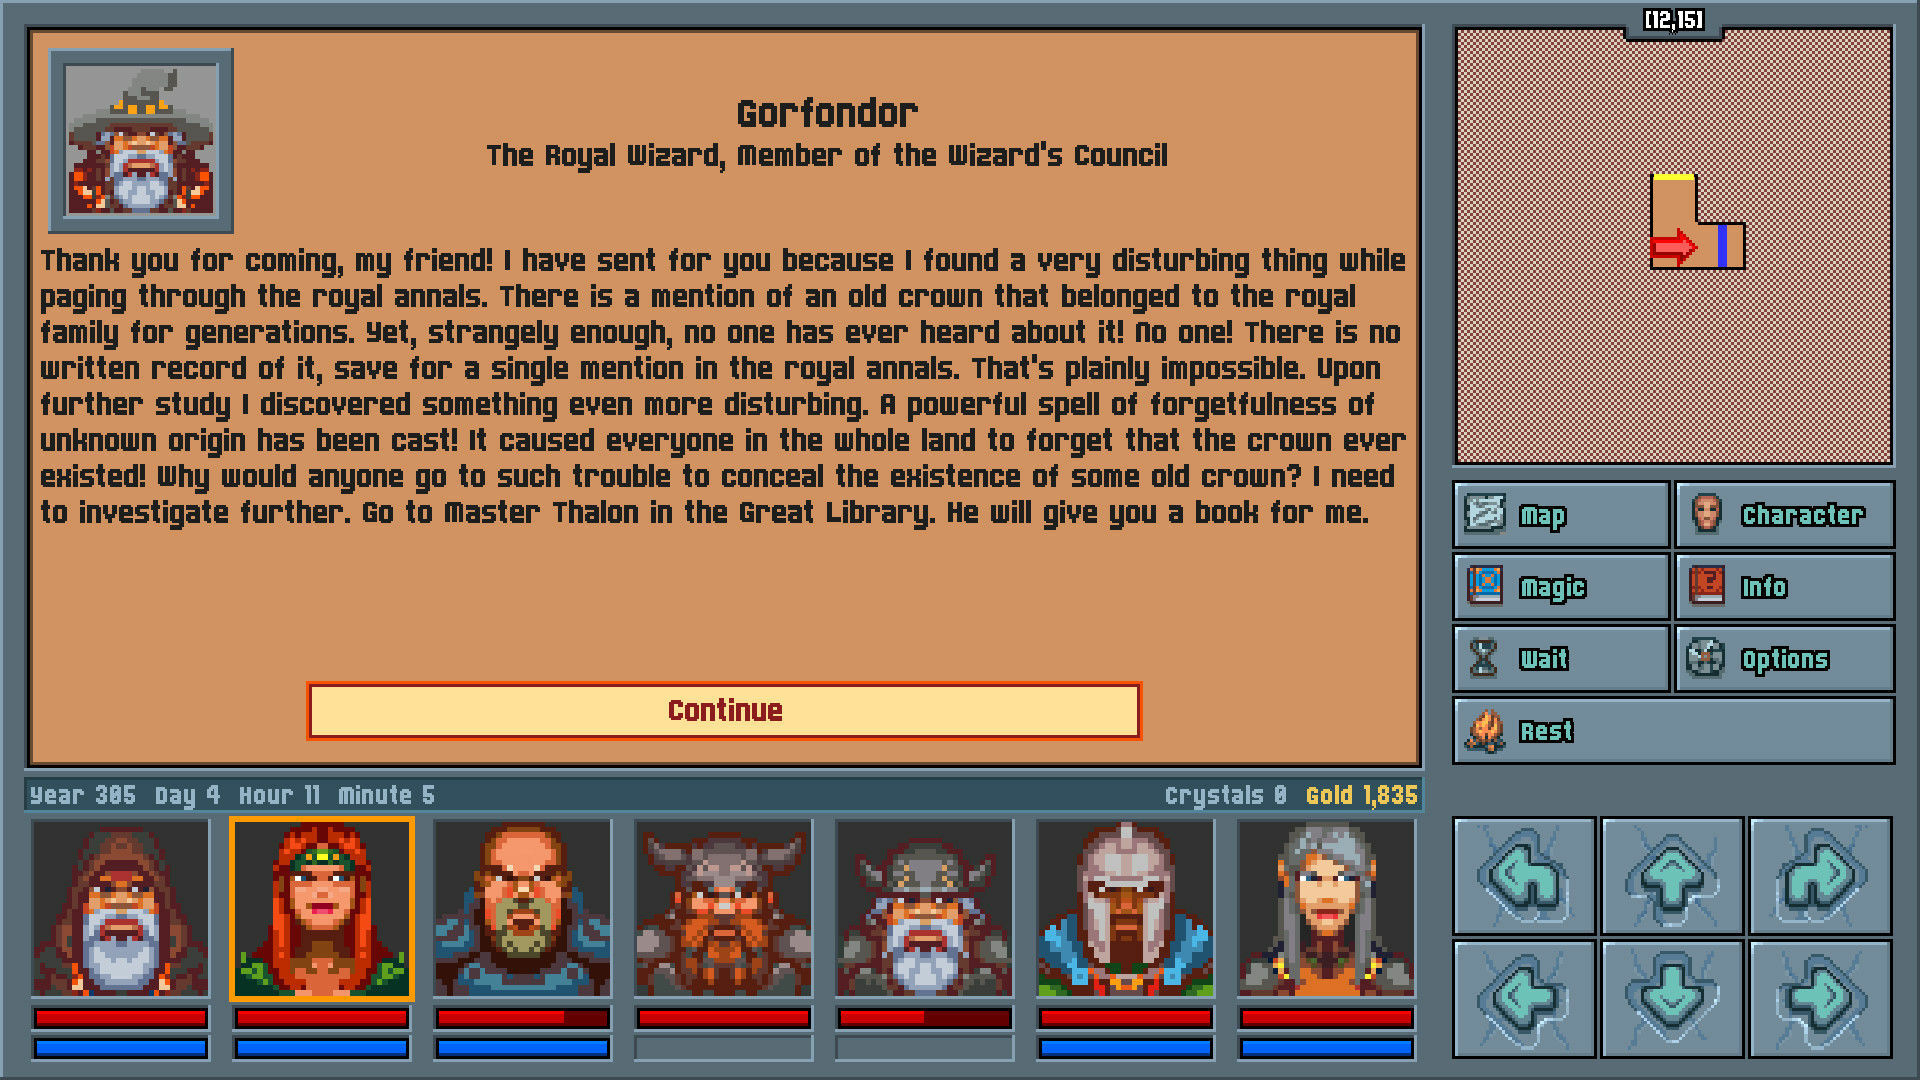 Legends of Amberland: The Forgotten Crown screenshot 3